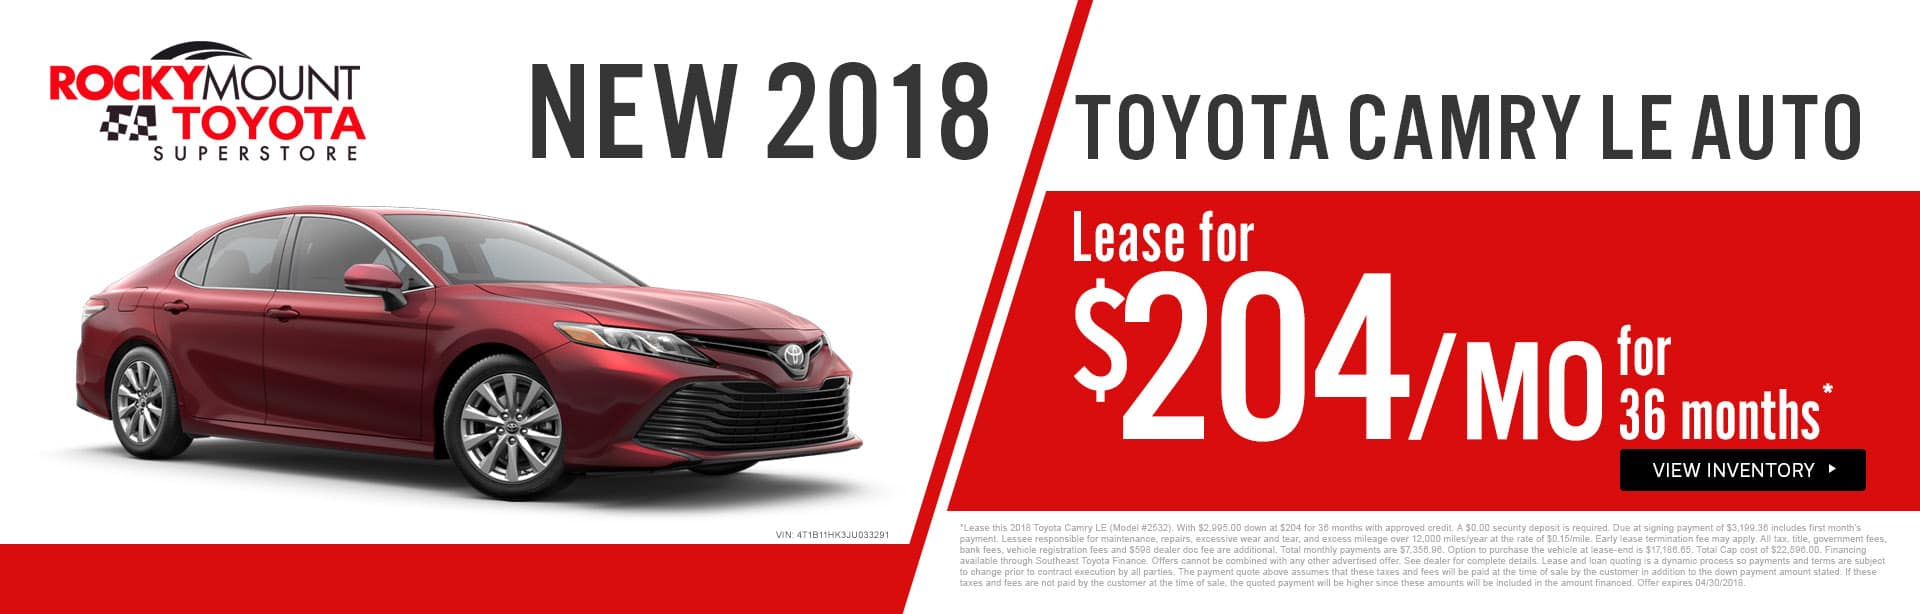 Drive home a 2018 Toyota Camry LE for just $204 a month in Rocky Mount NC